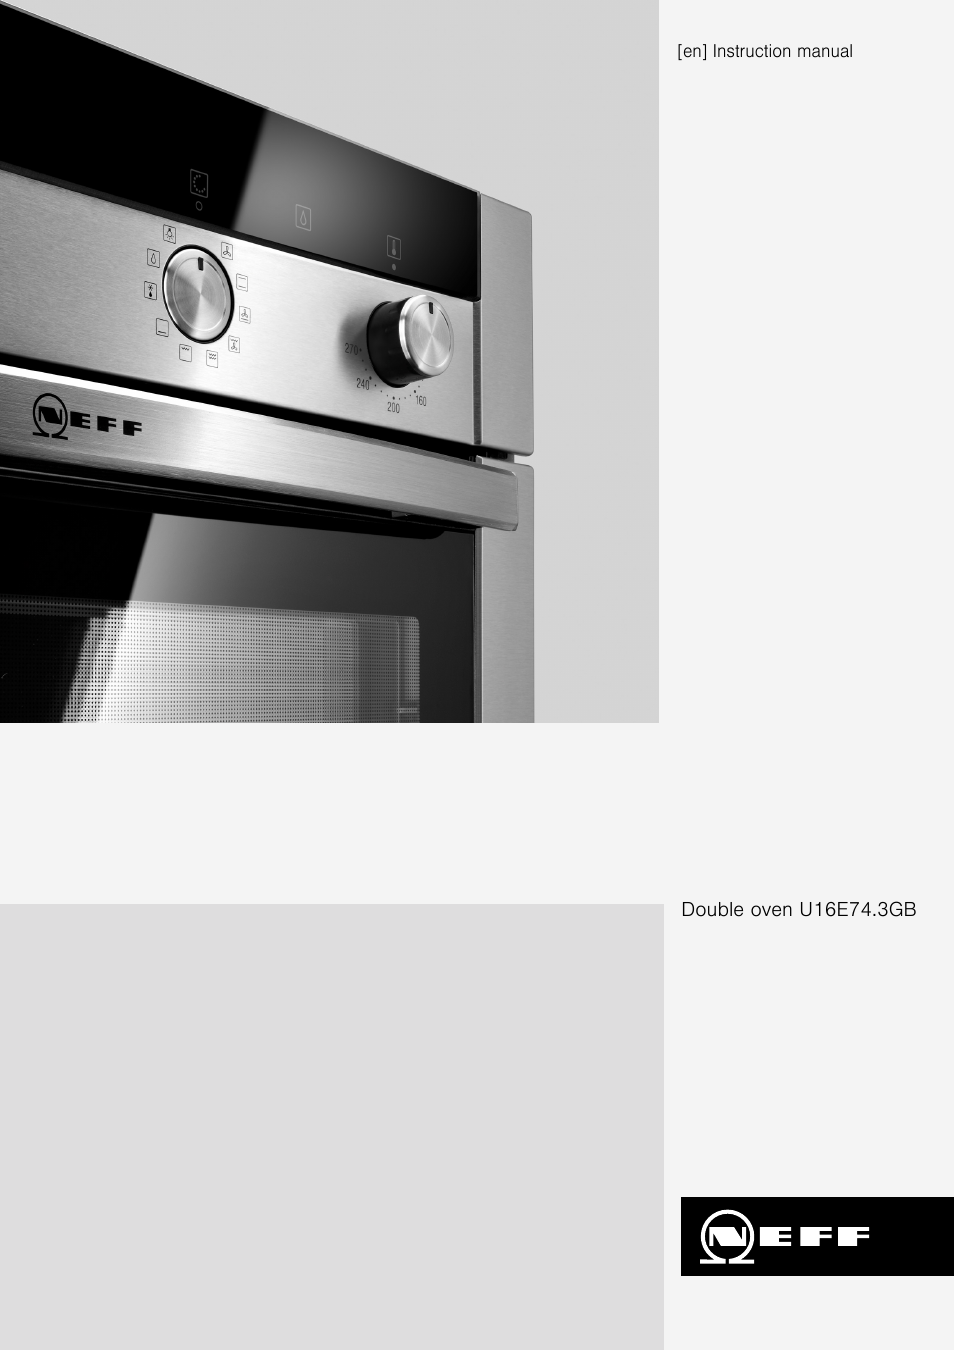 Neff U16e74n3gb User Manual 36 Pages Double Oven Wiring Instructions